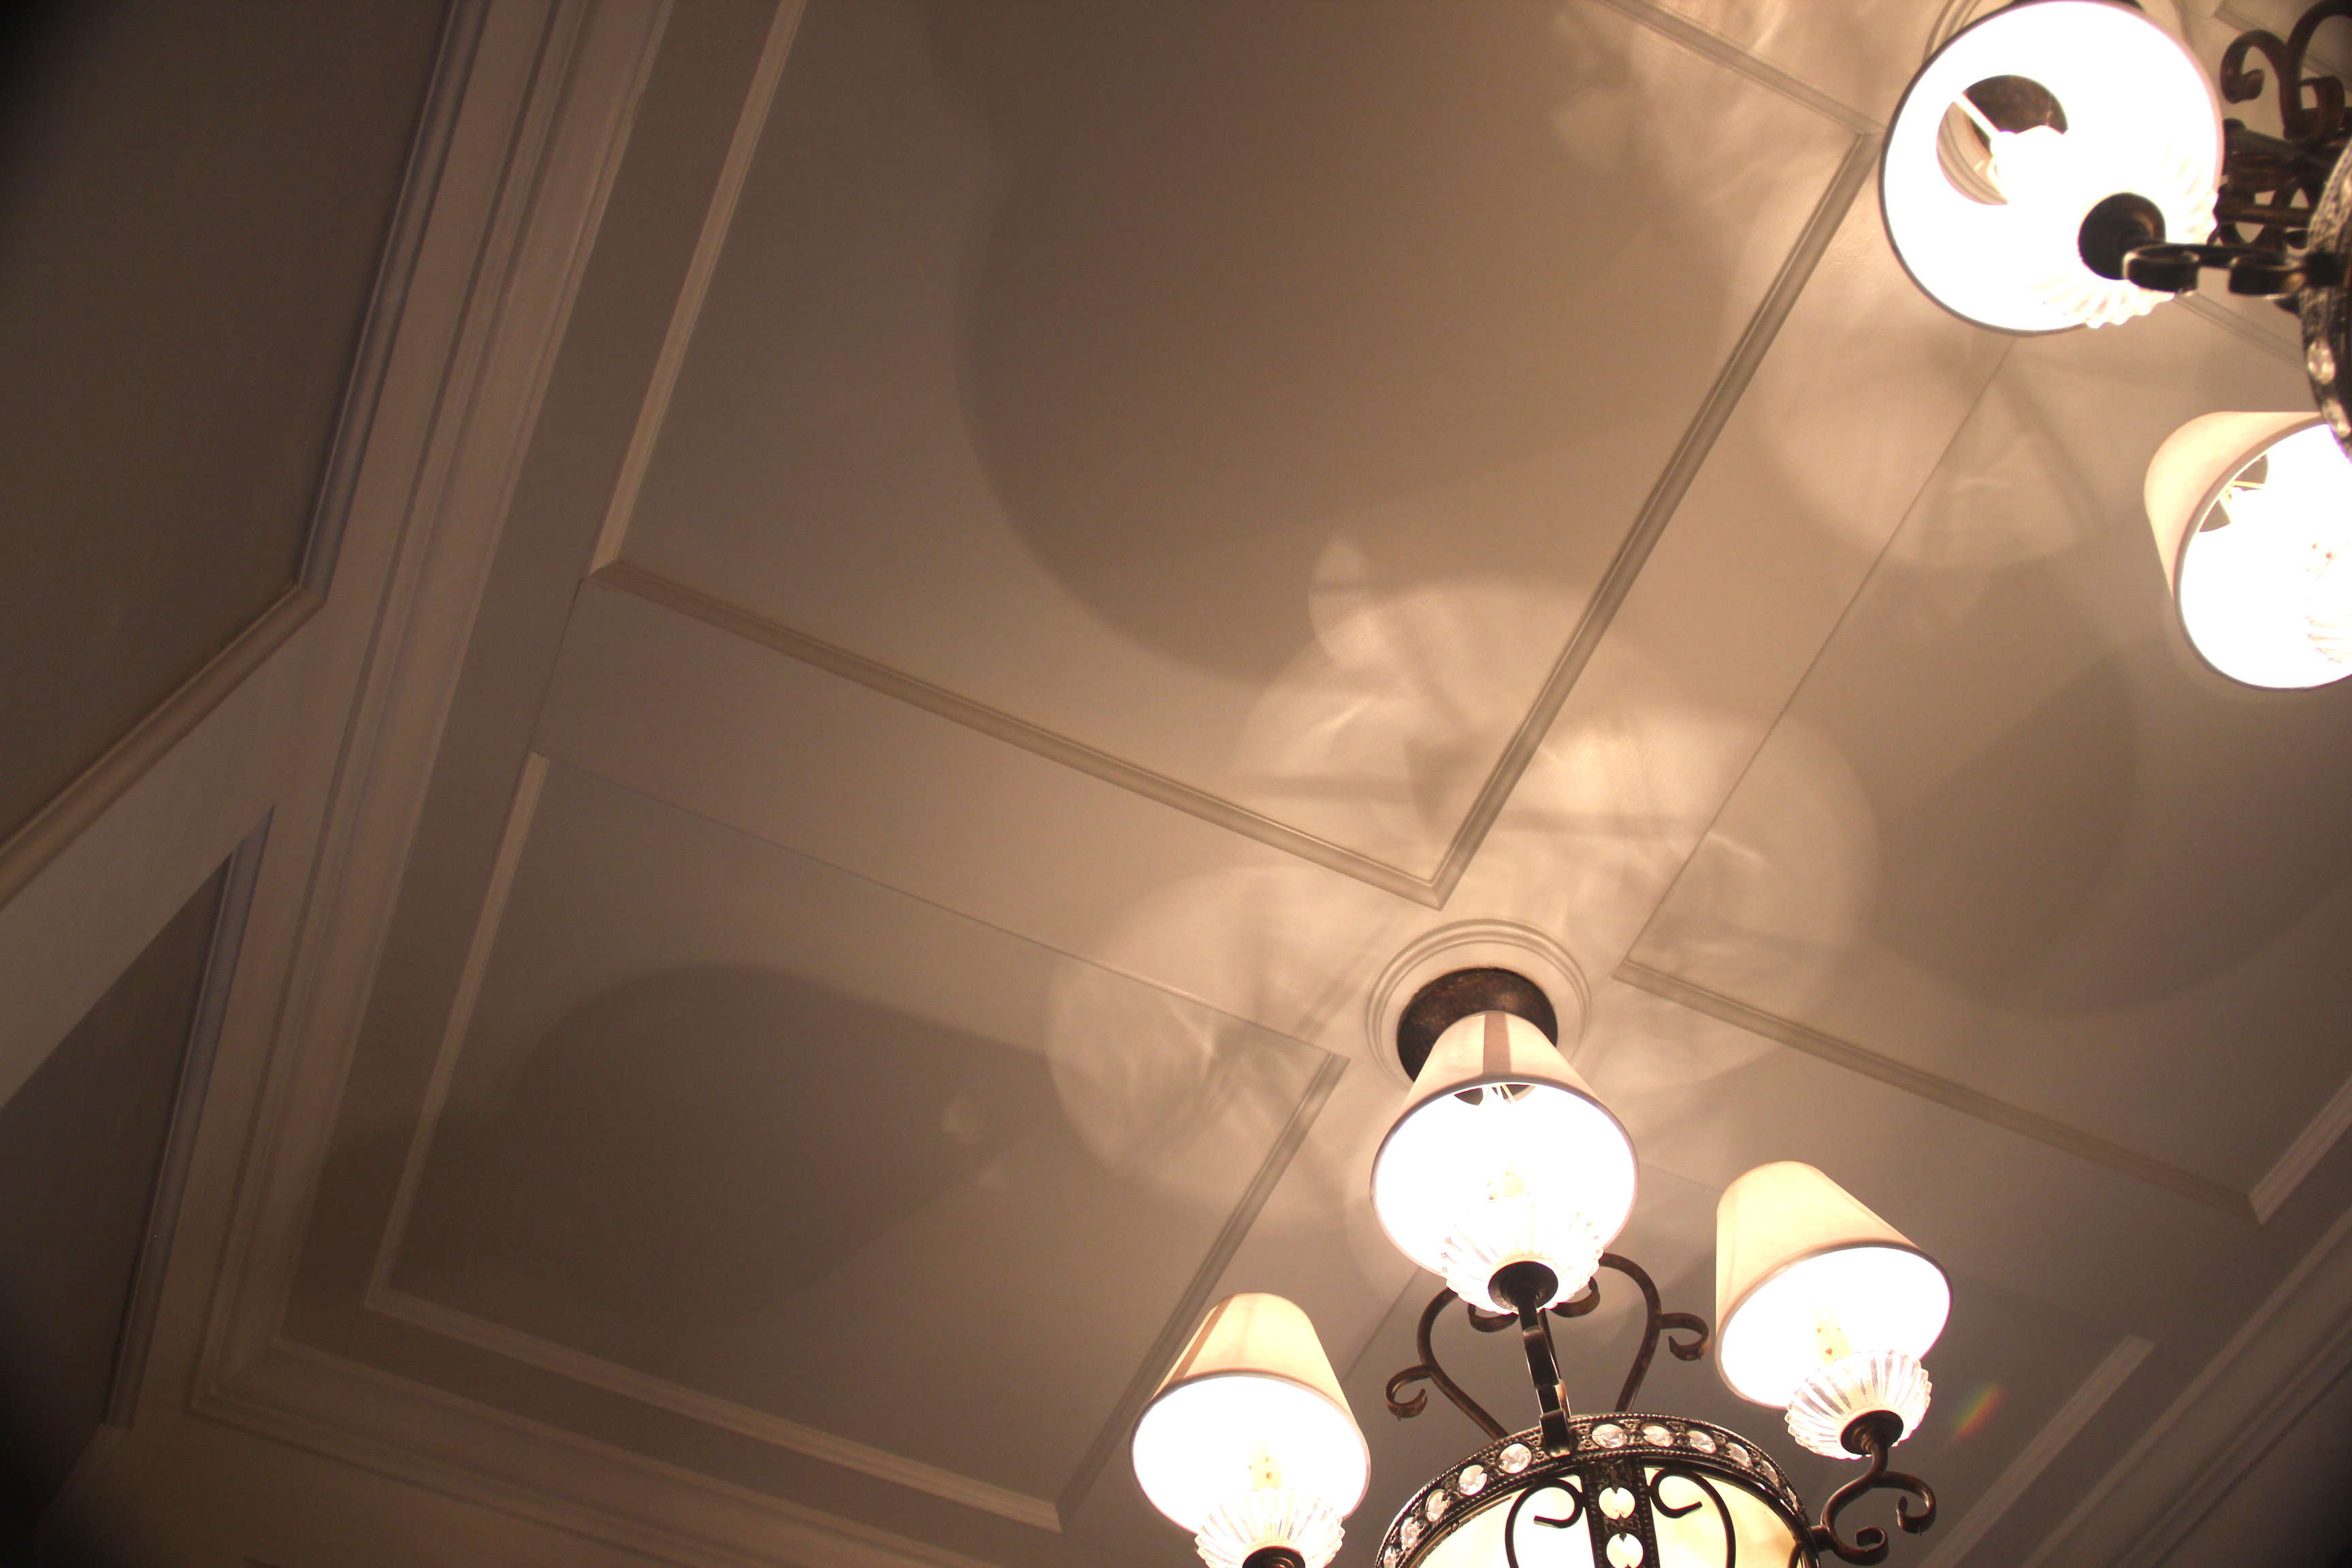 Country club entryway ceiling